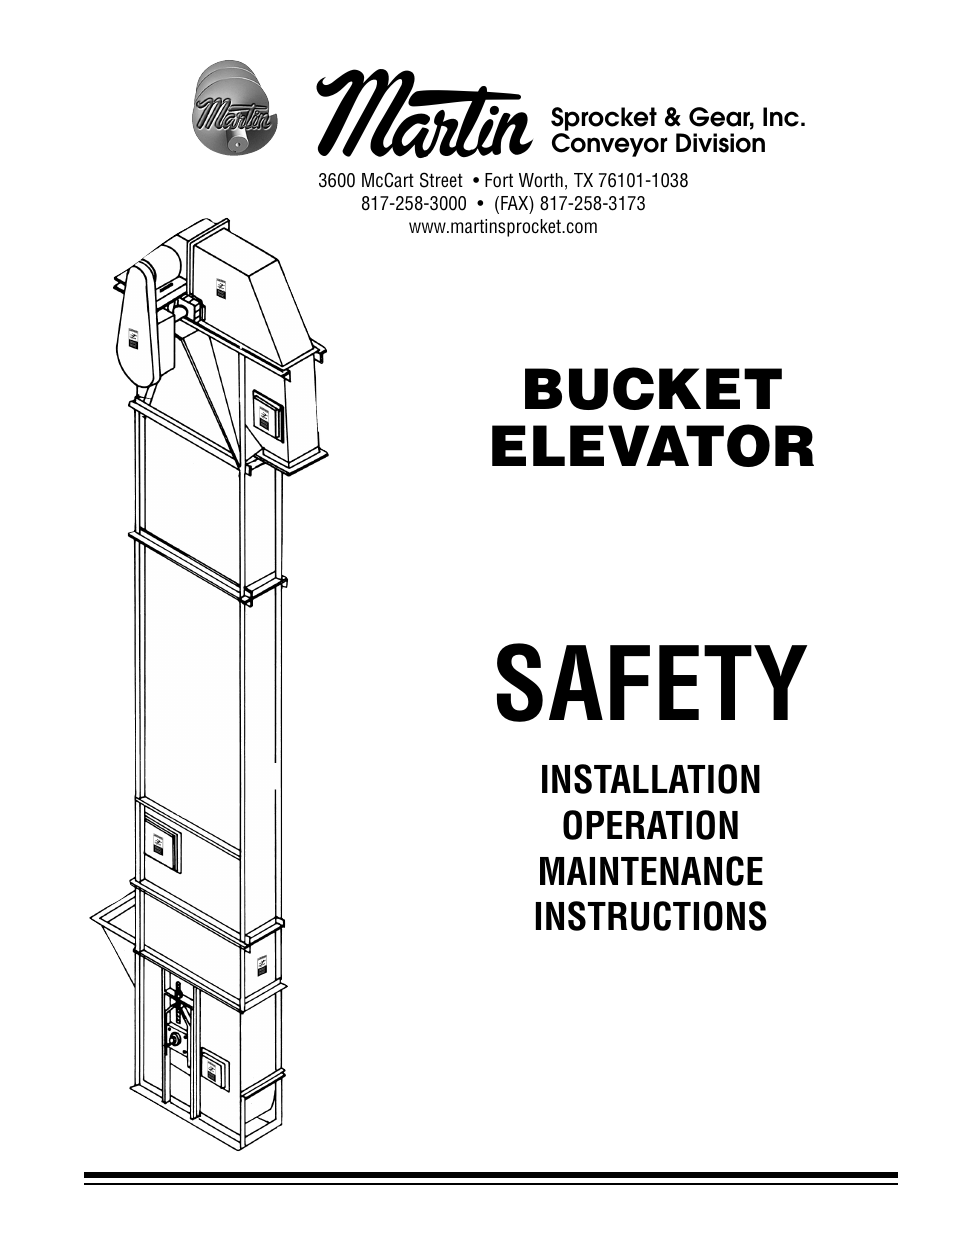 Martin Sprocket & Gear Bucket Elevator Safety User Manual